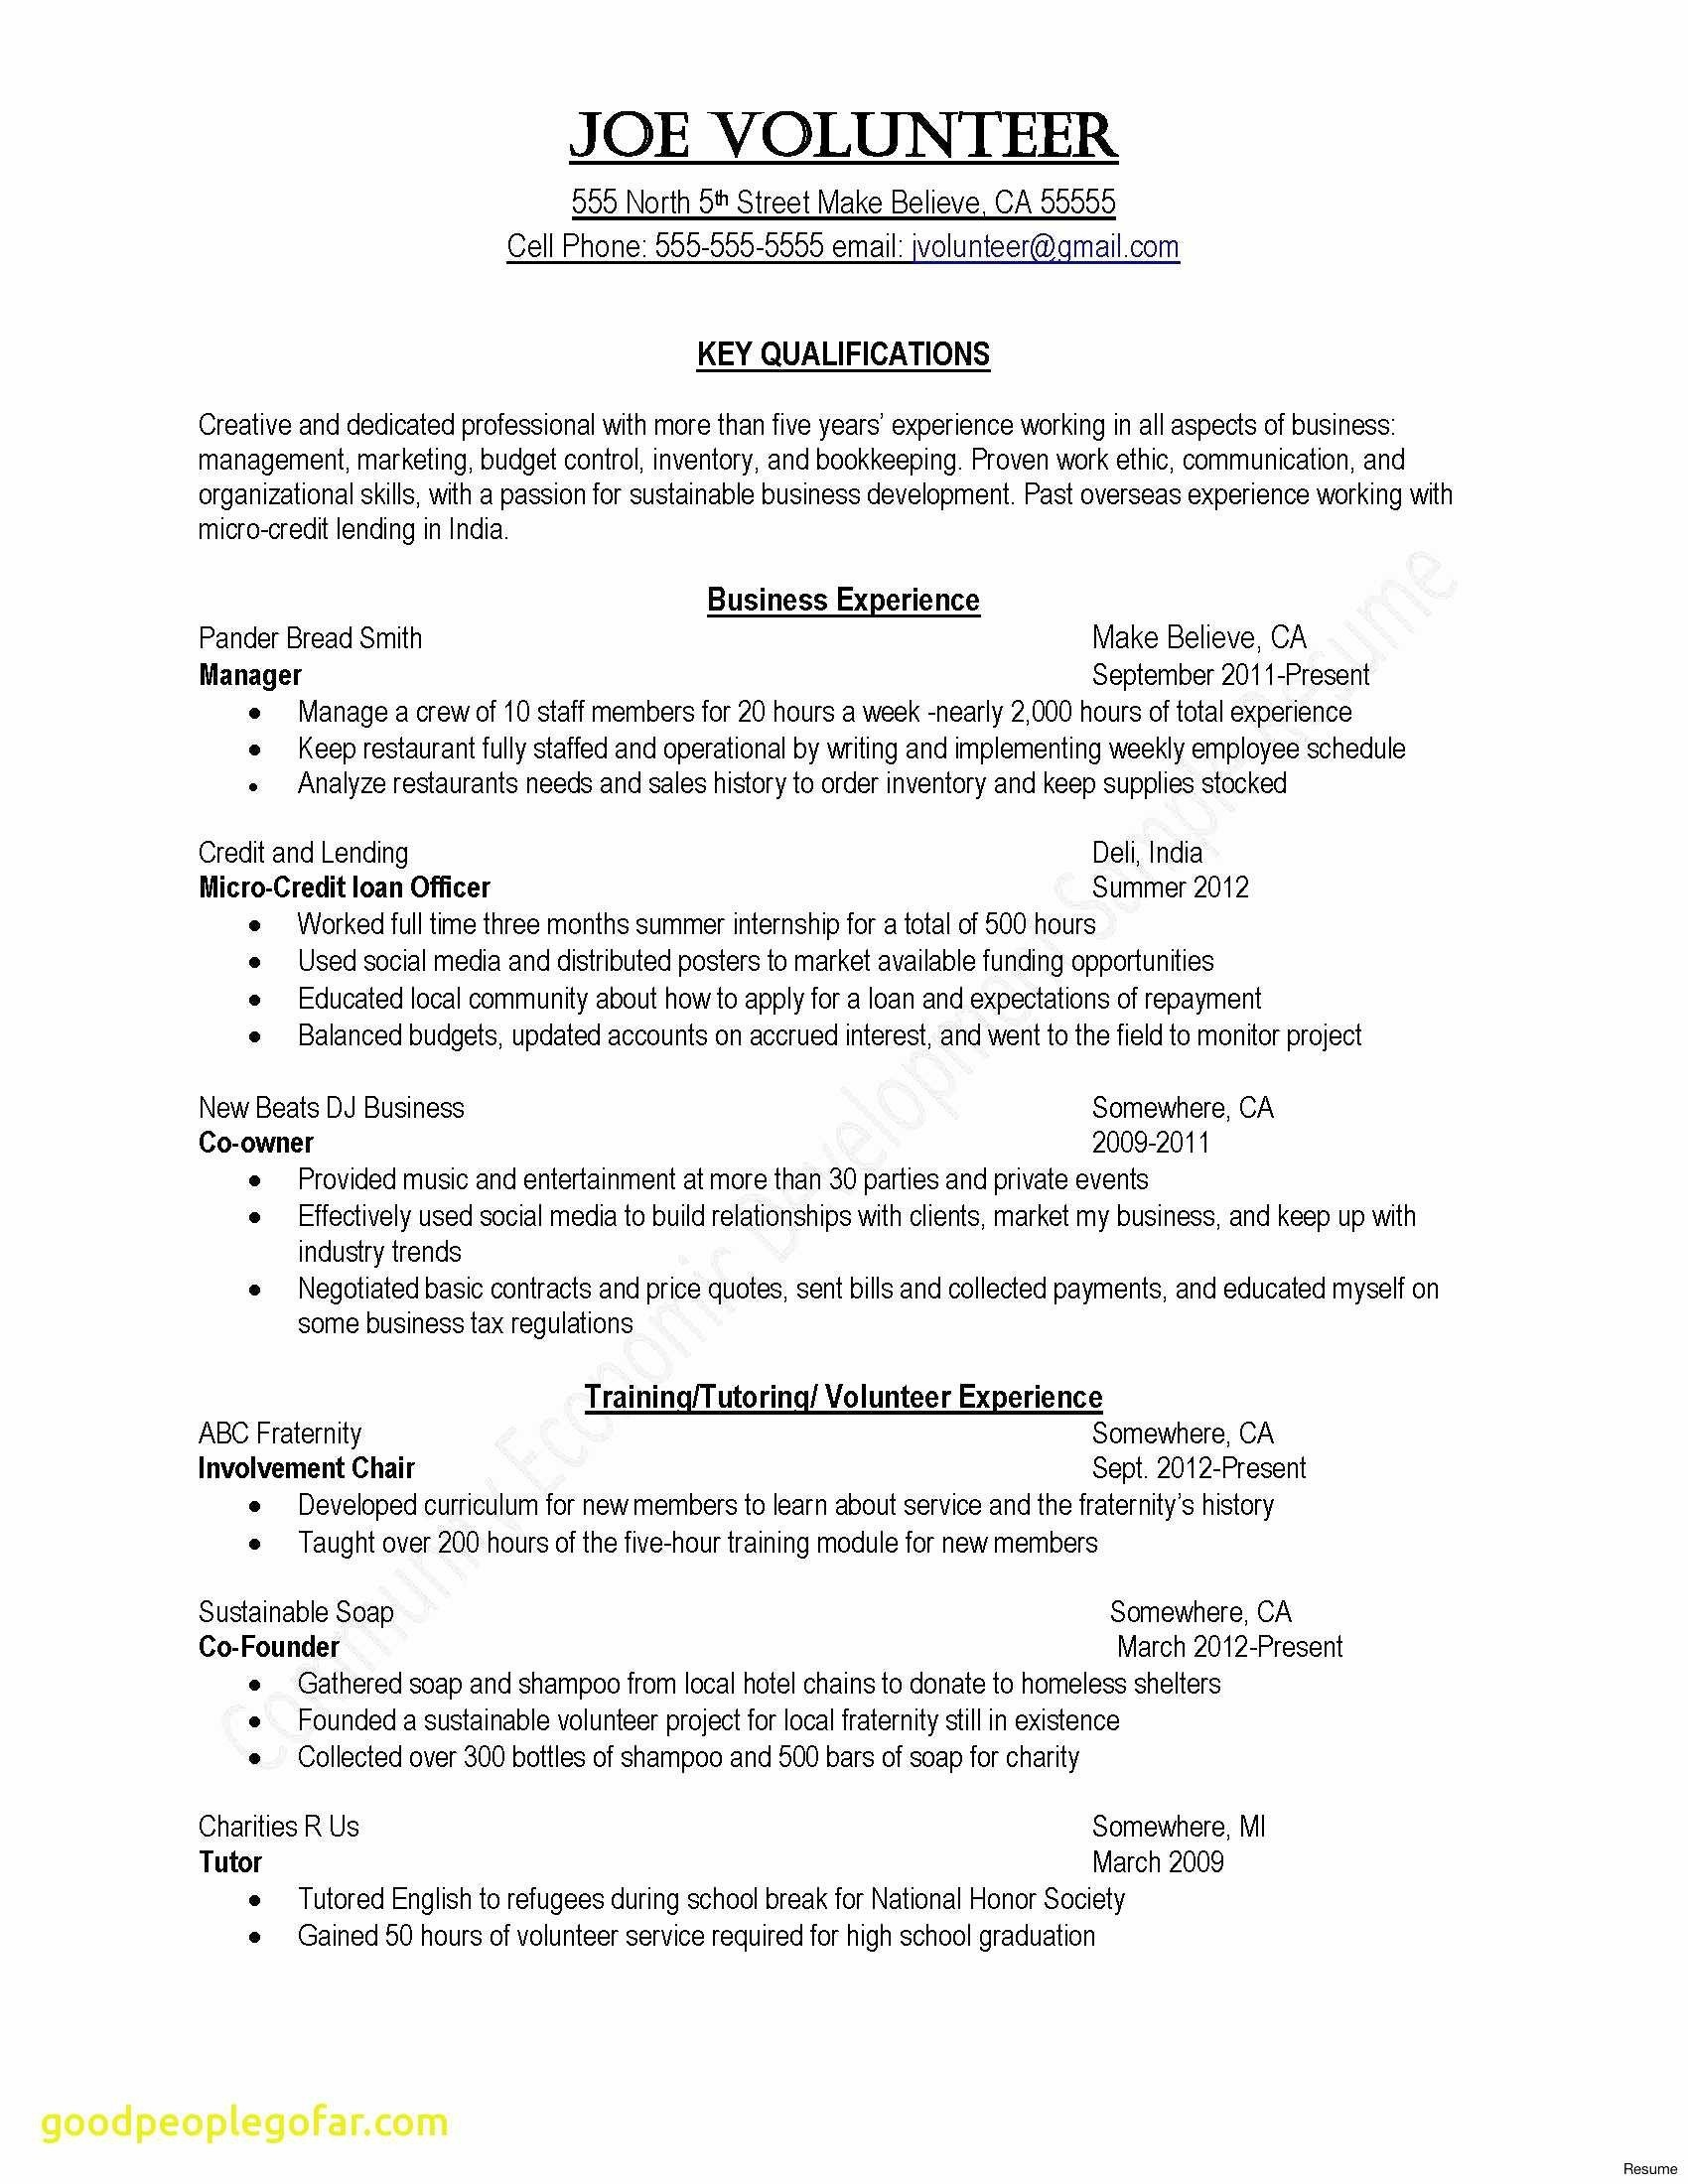 Post My Resume - where to Post My Resume Lovely Elegant Sample College Application